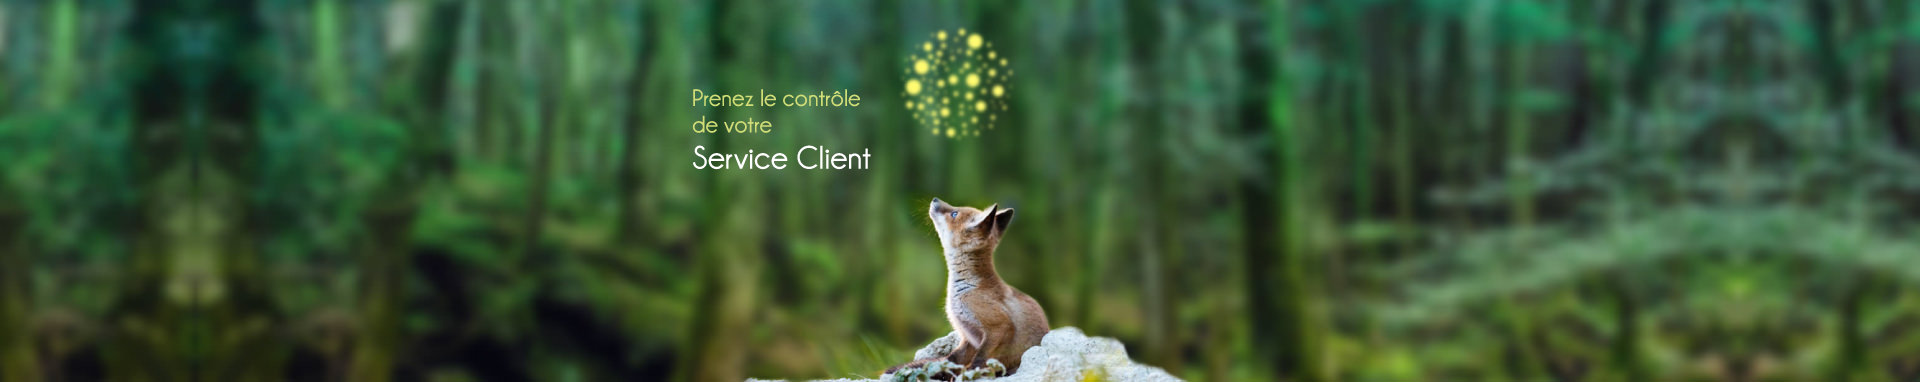 Freshdesk solution de gestion du service client